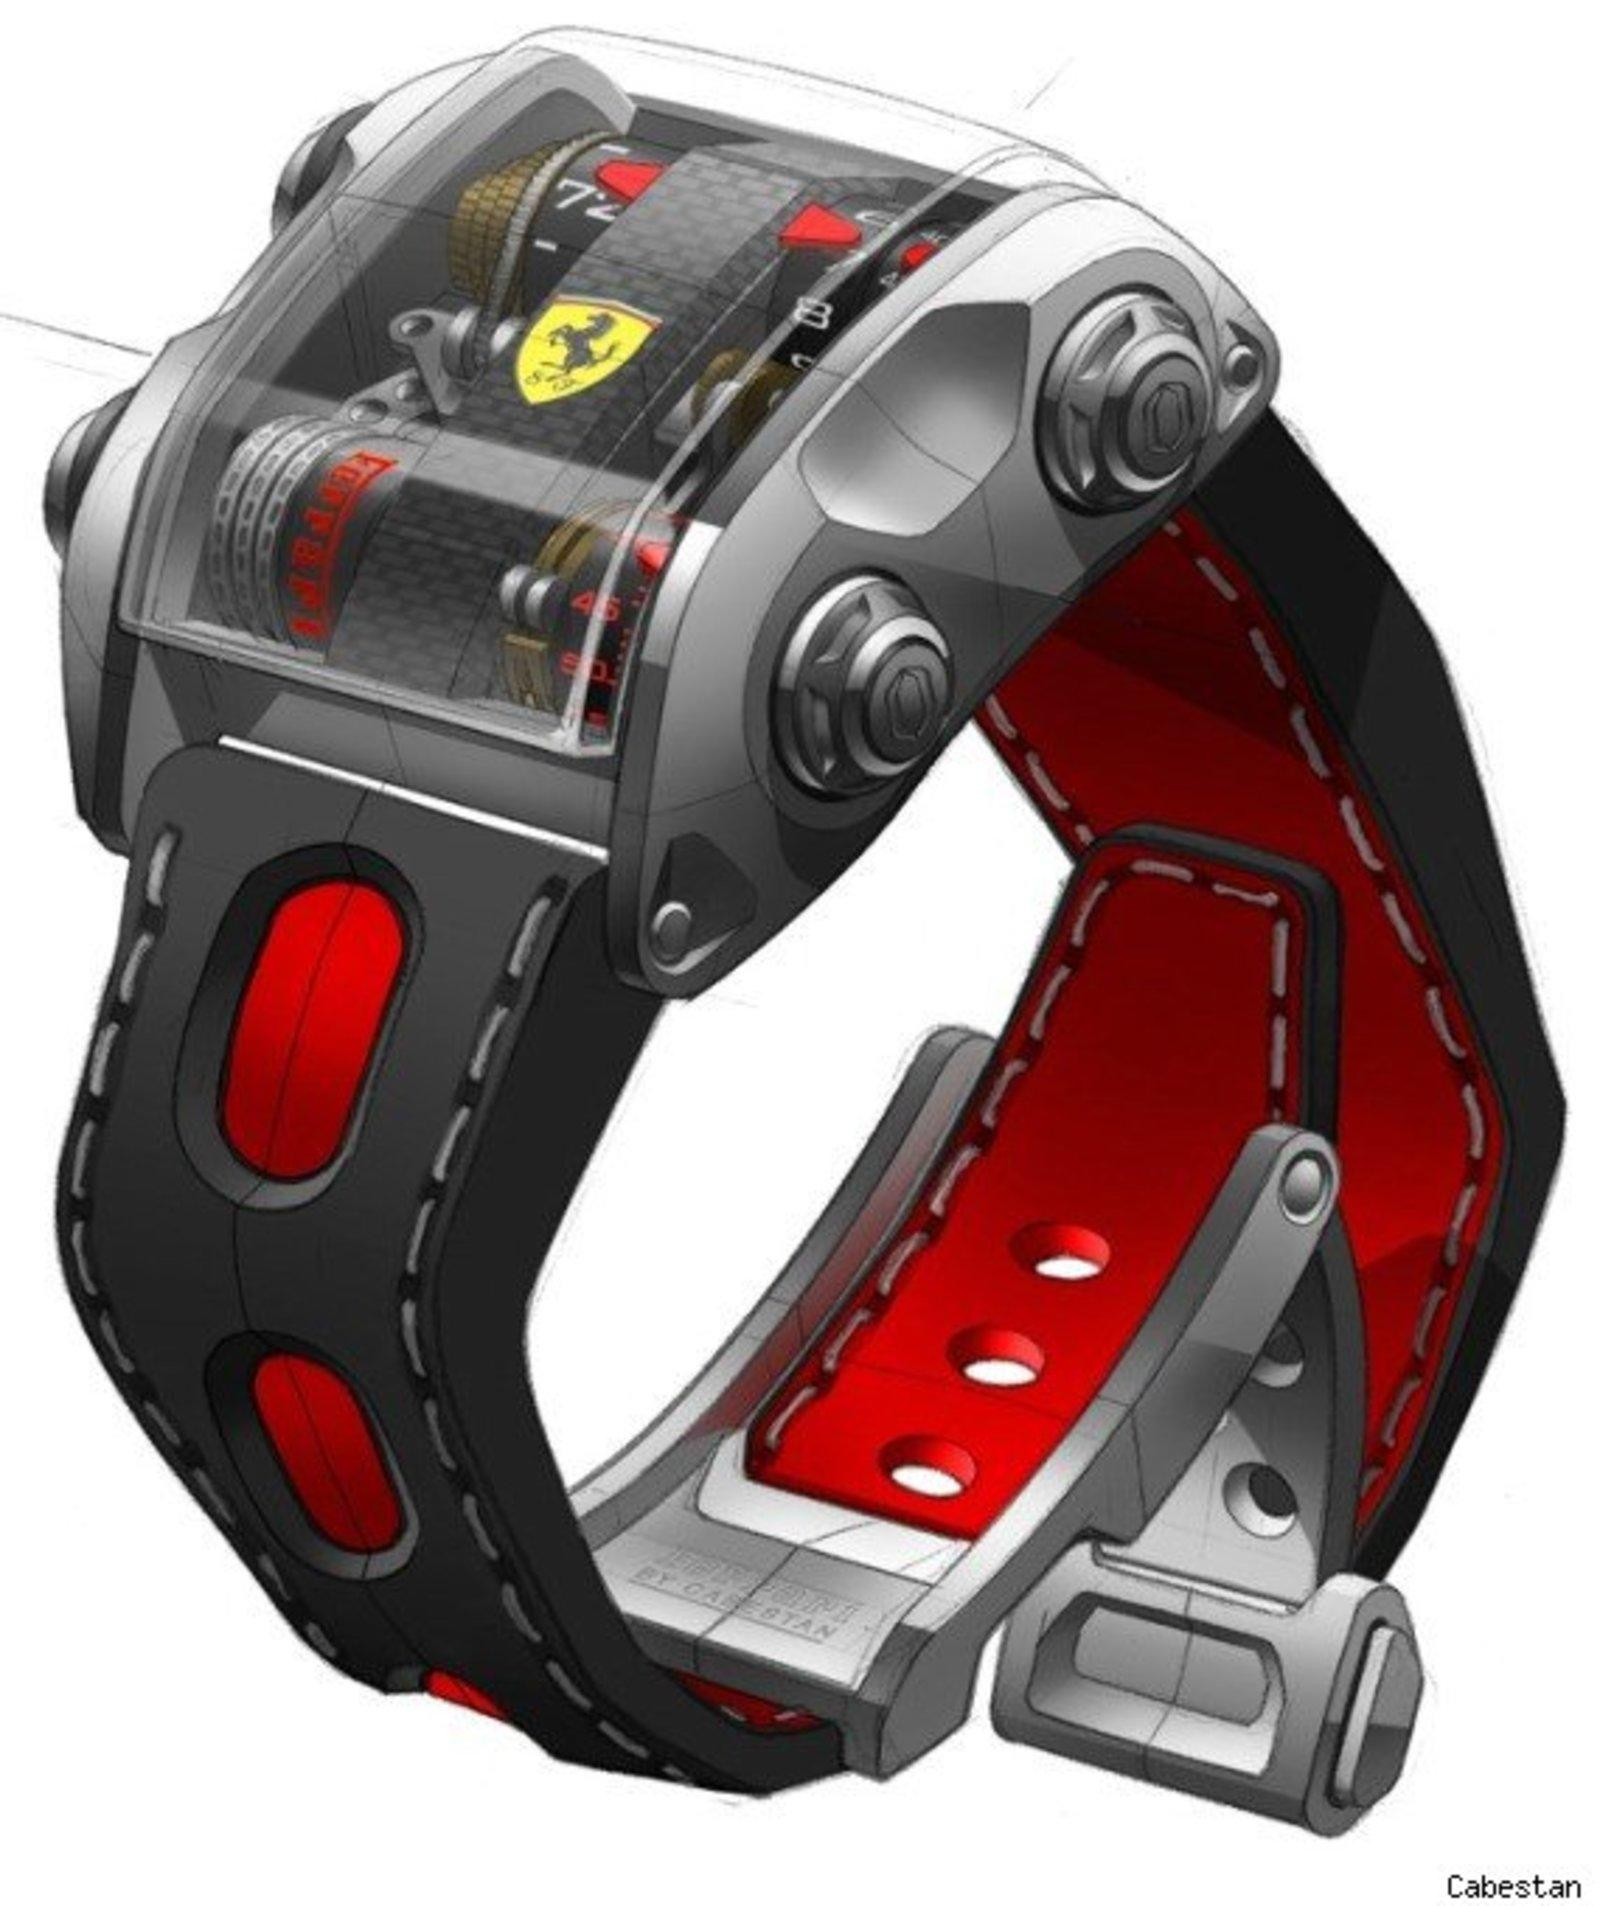 watches ferrari products watch australia the lacoste your buy kids now factory upgrade red